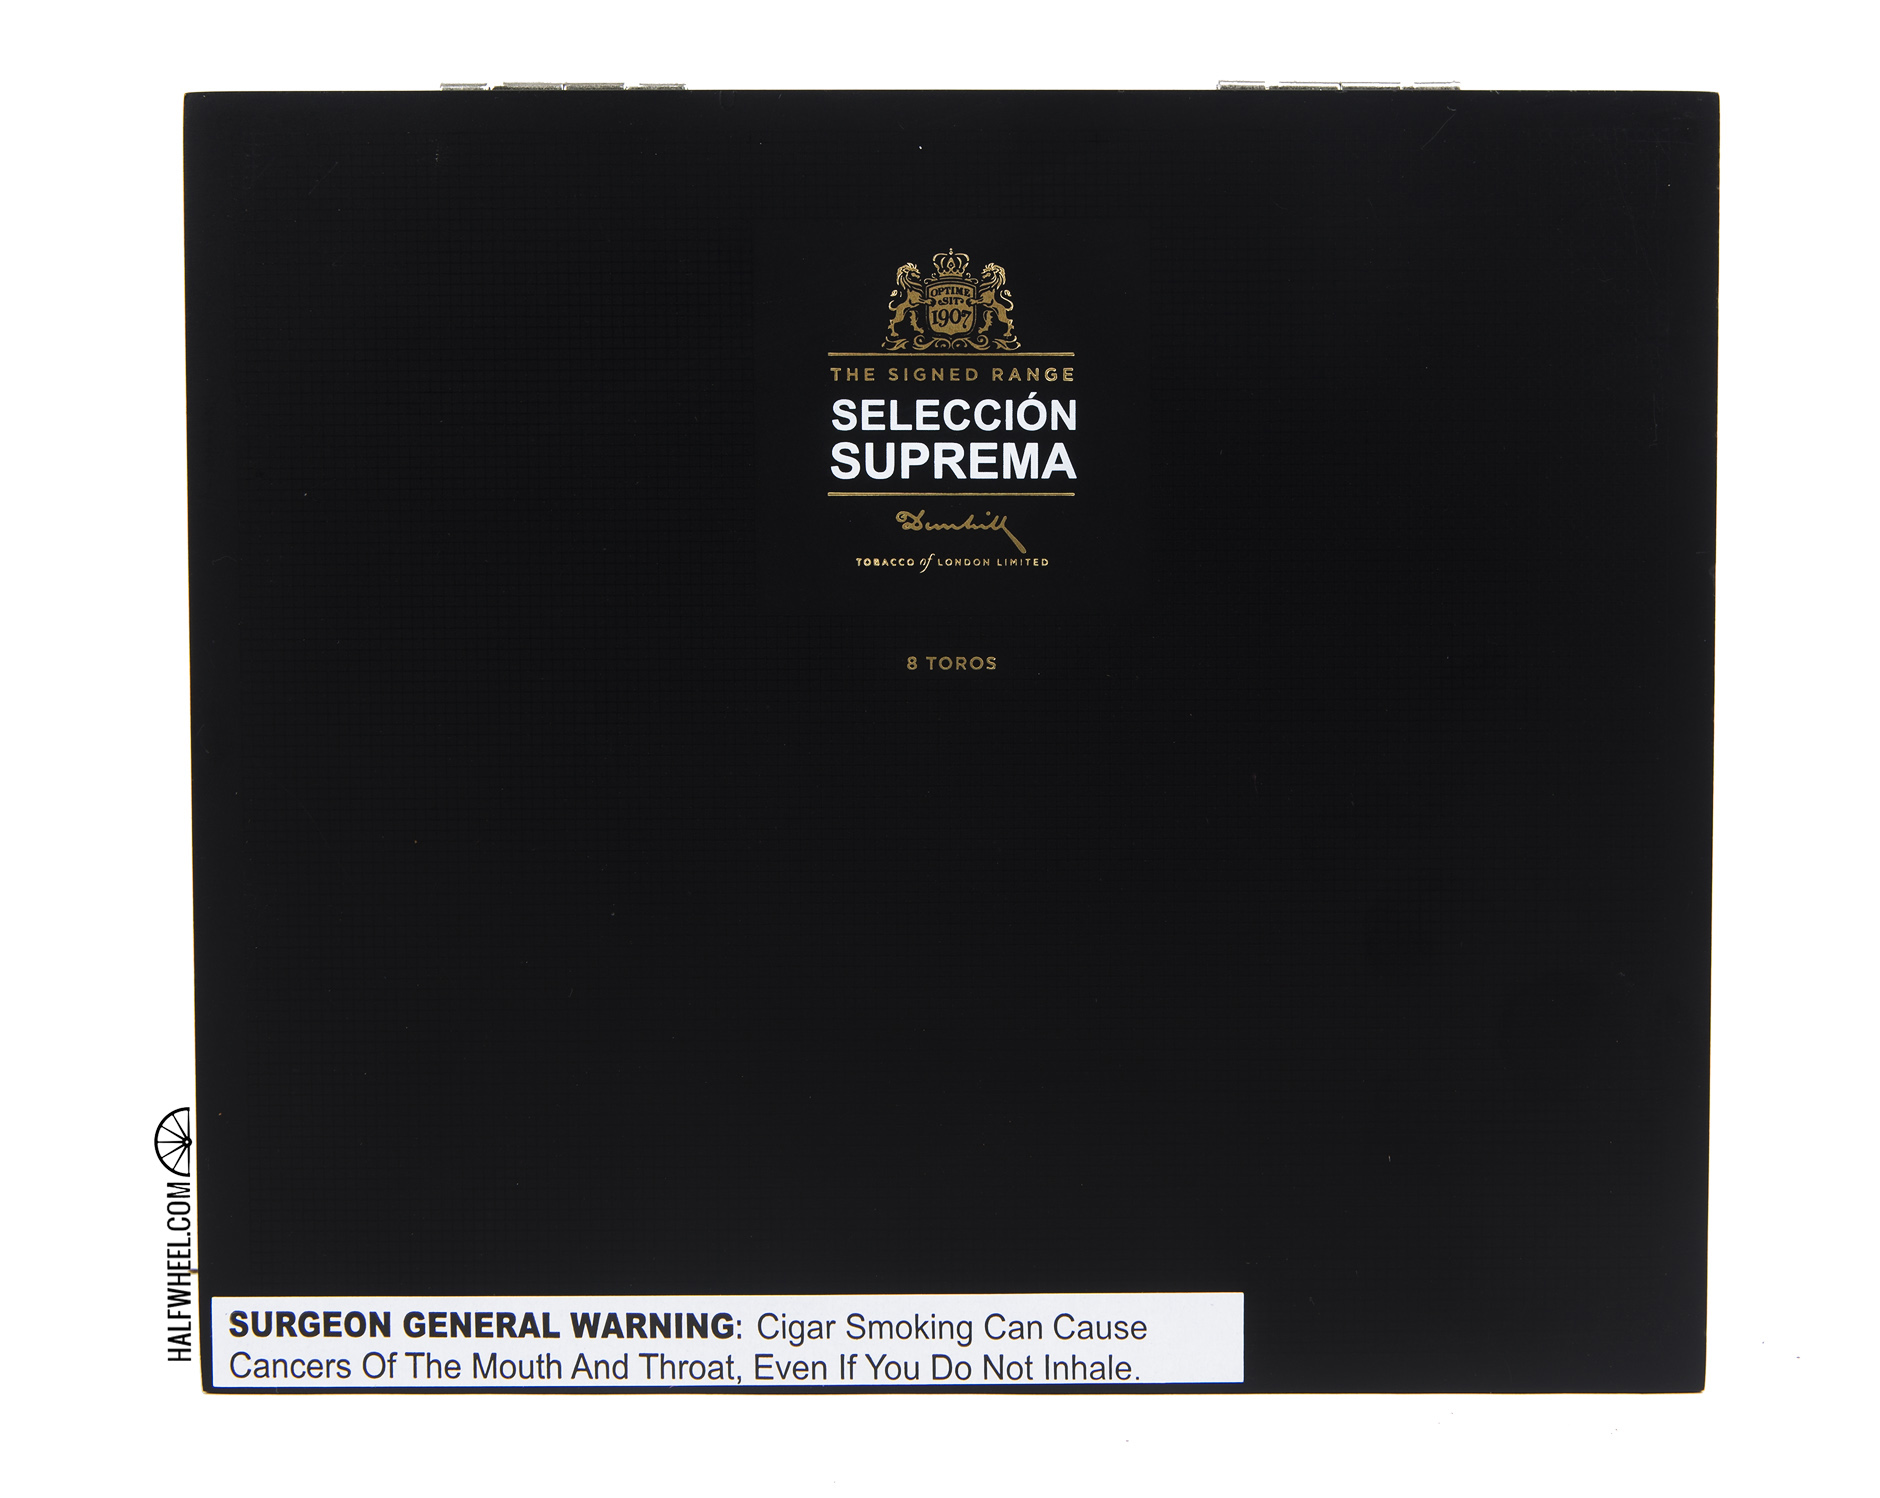 Dunhill Signed Range Seleccion Suprema Box 1